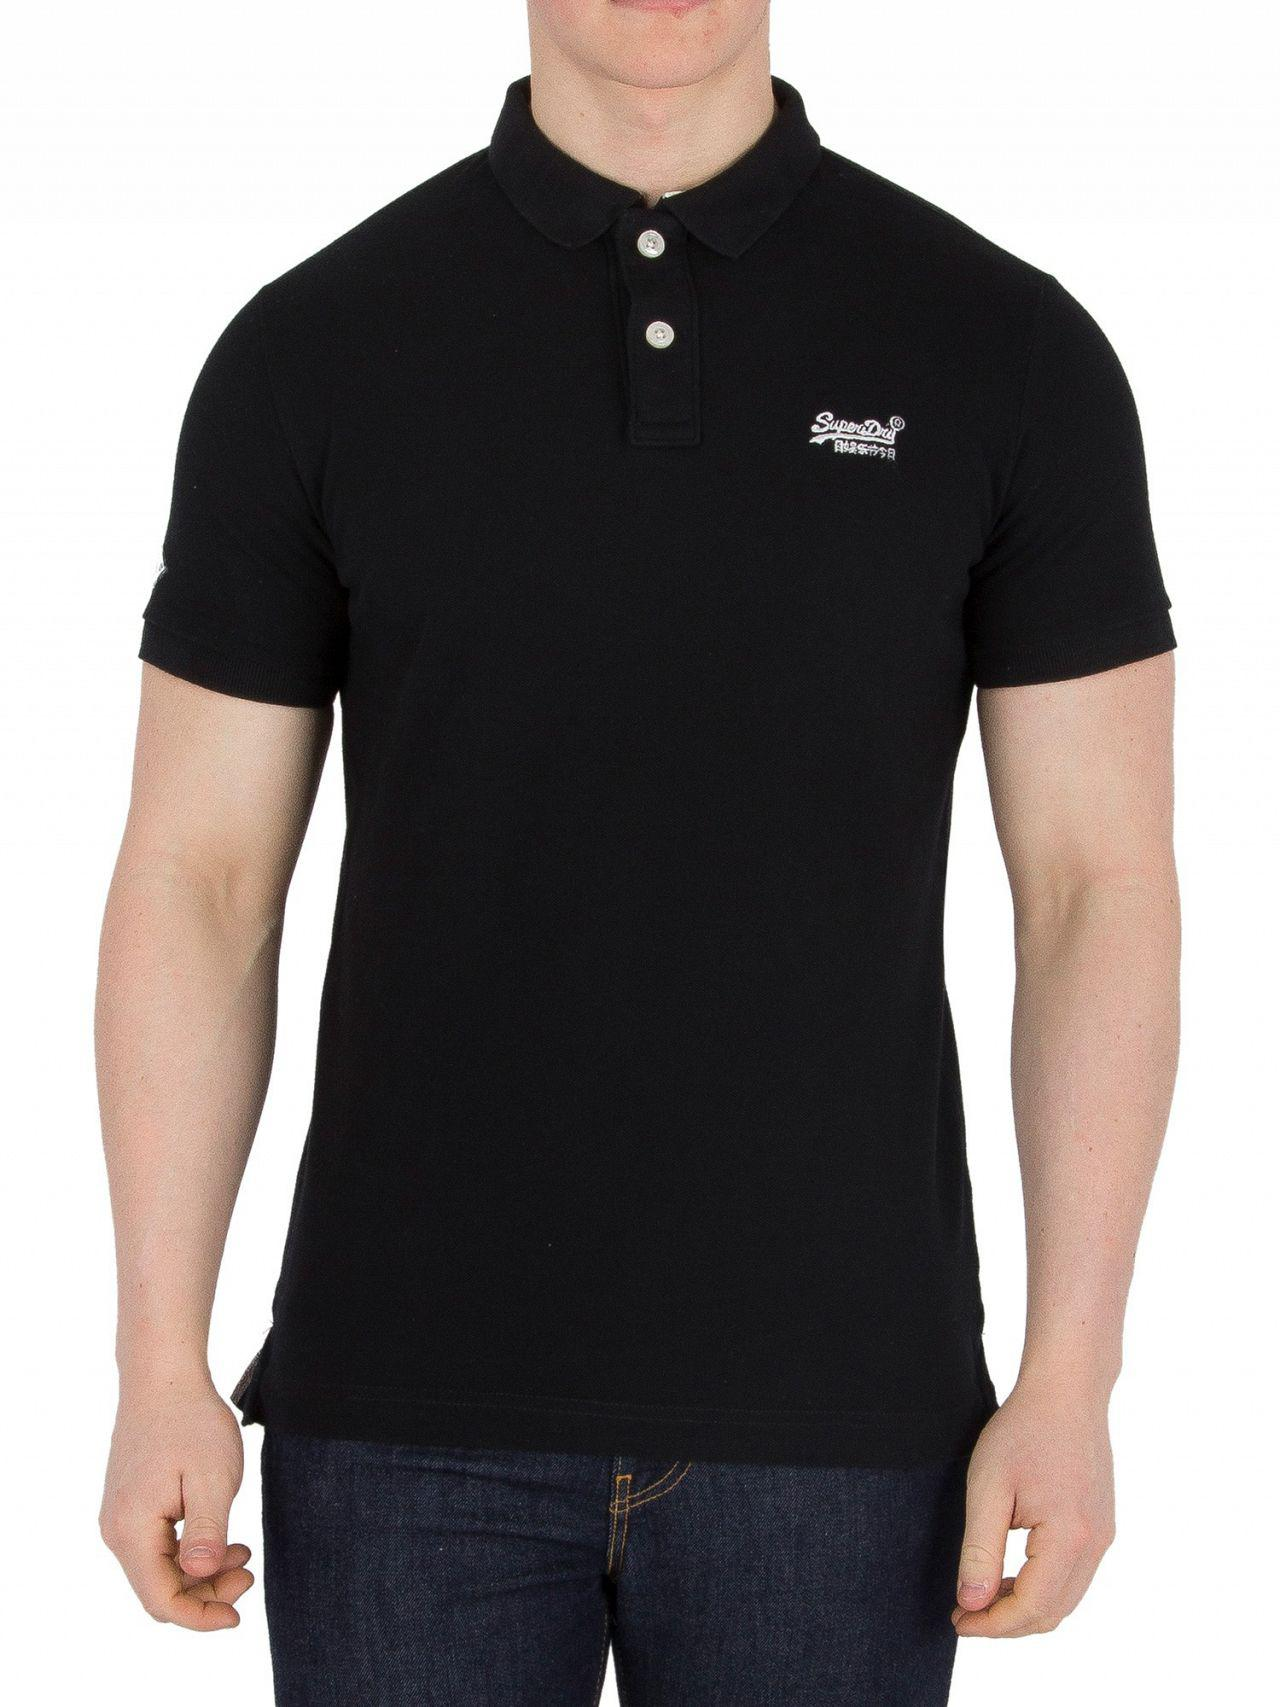 8456fcaa7 Superdry Black Classic Pique Logo Polo Shirt in Black for Men - Lyst